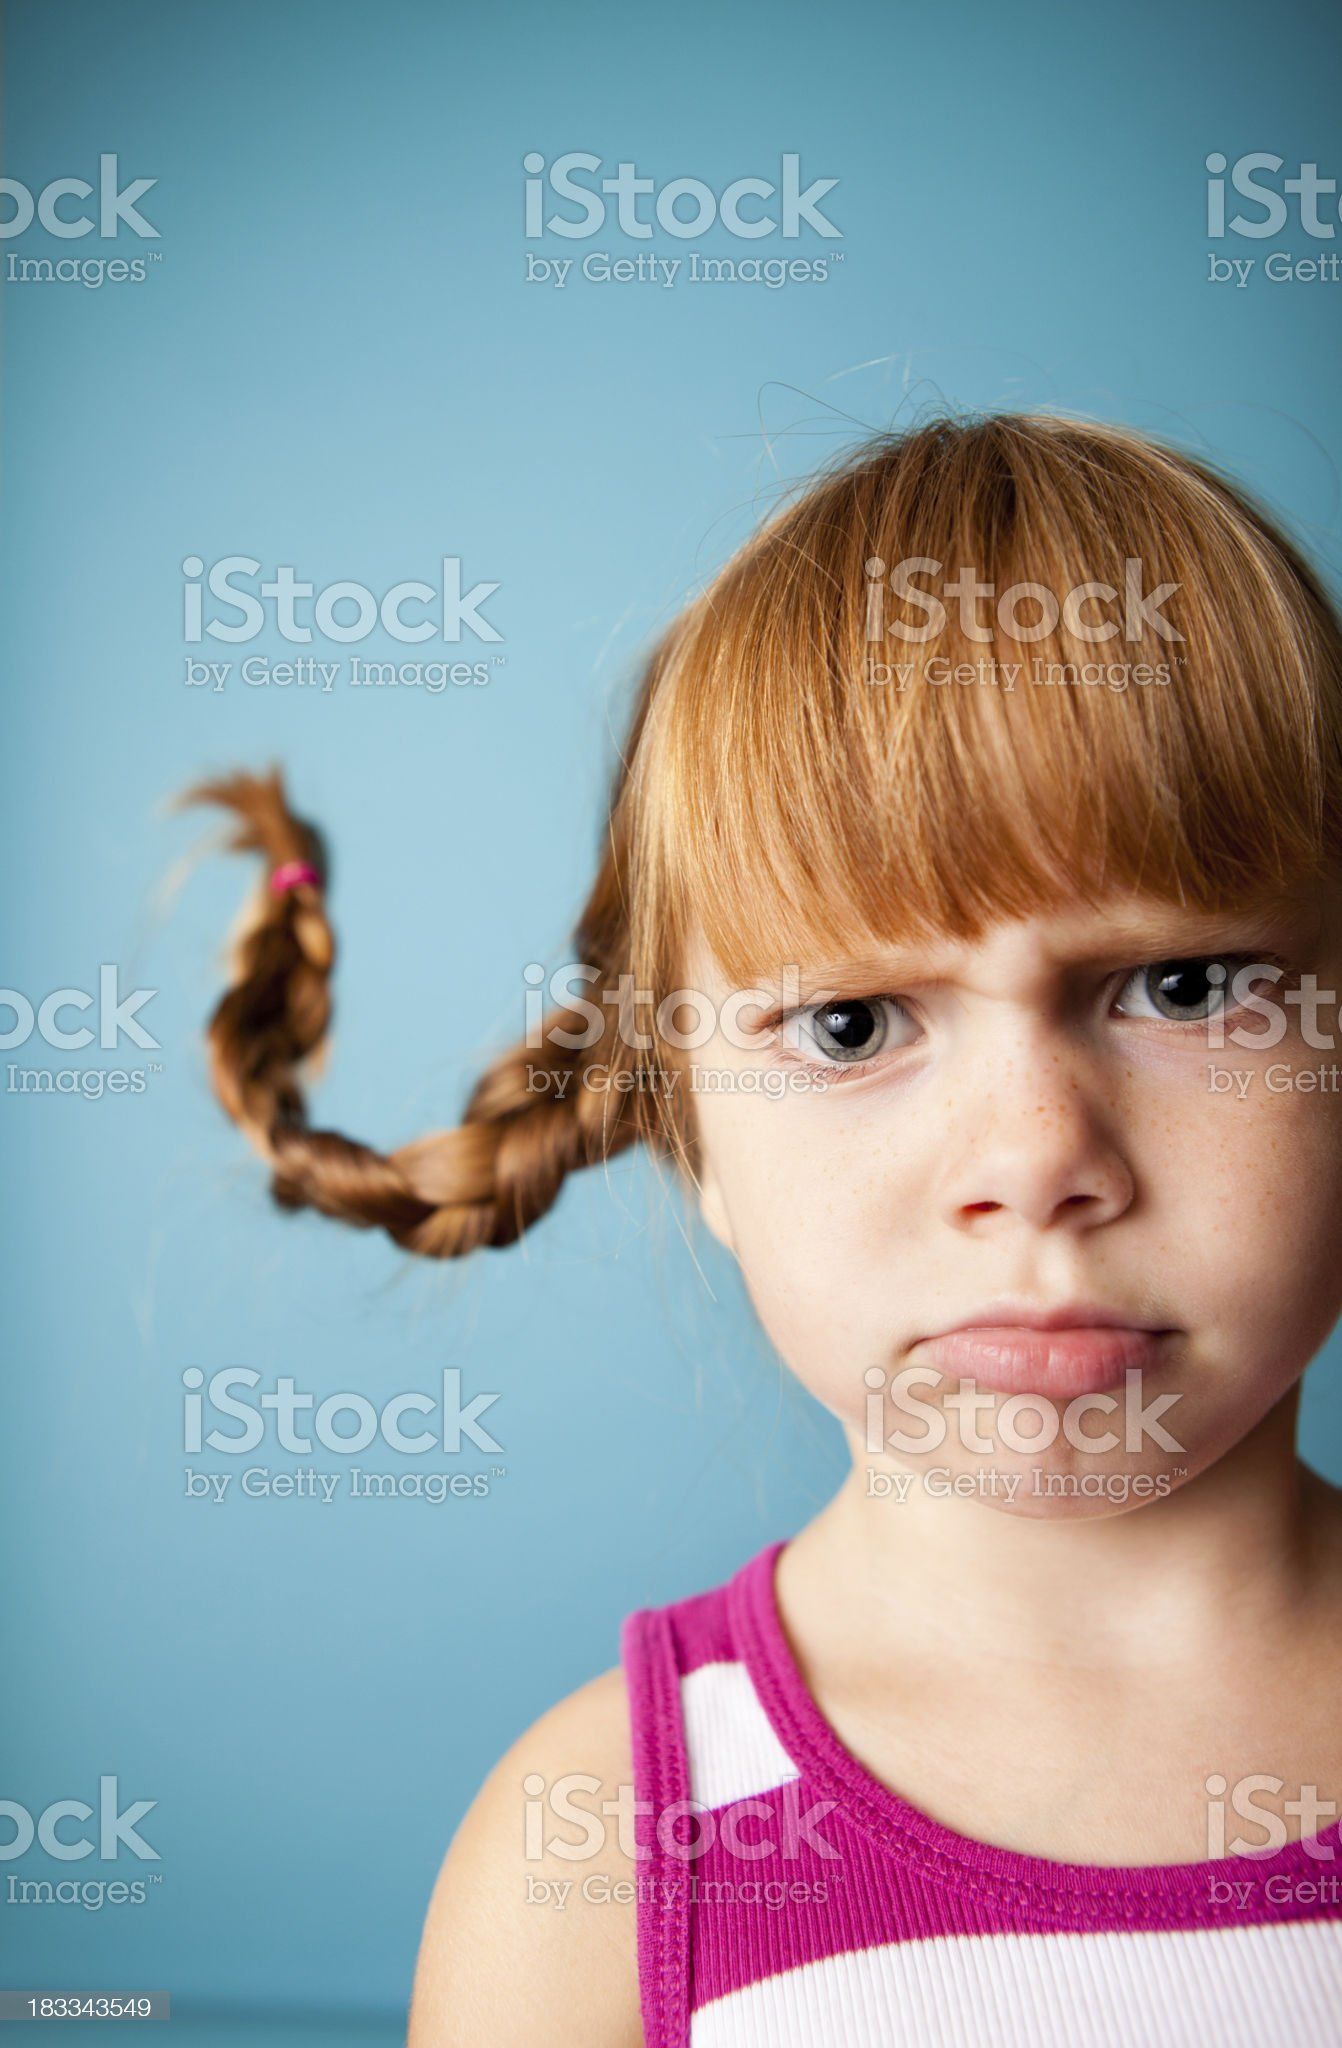 Upset Red-Haired Girl Pouting with Upward Braids royalty-free stock photo